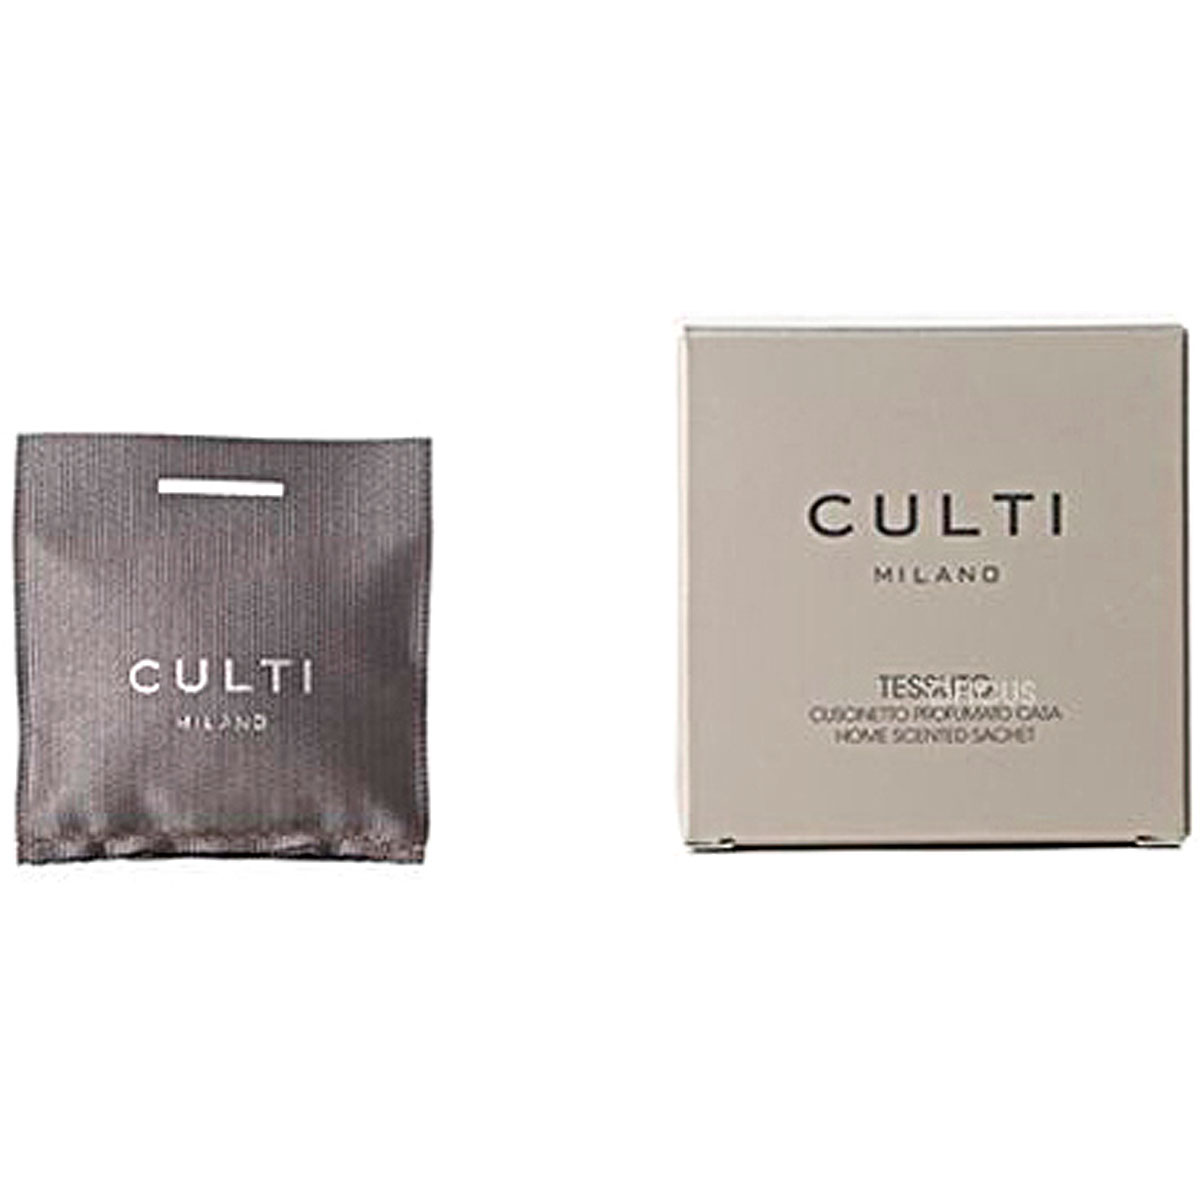 Culti Milano Home Scents for Men On Sale, Home Sachet - Tessuto, 2019